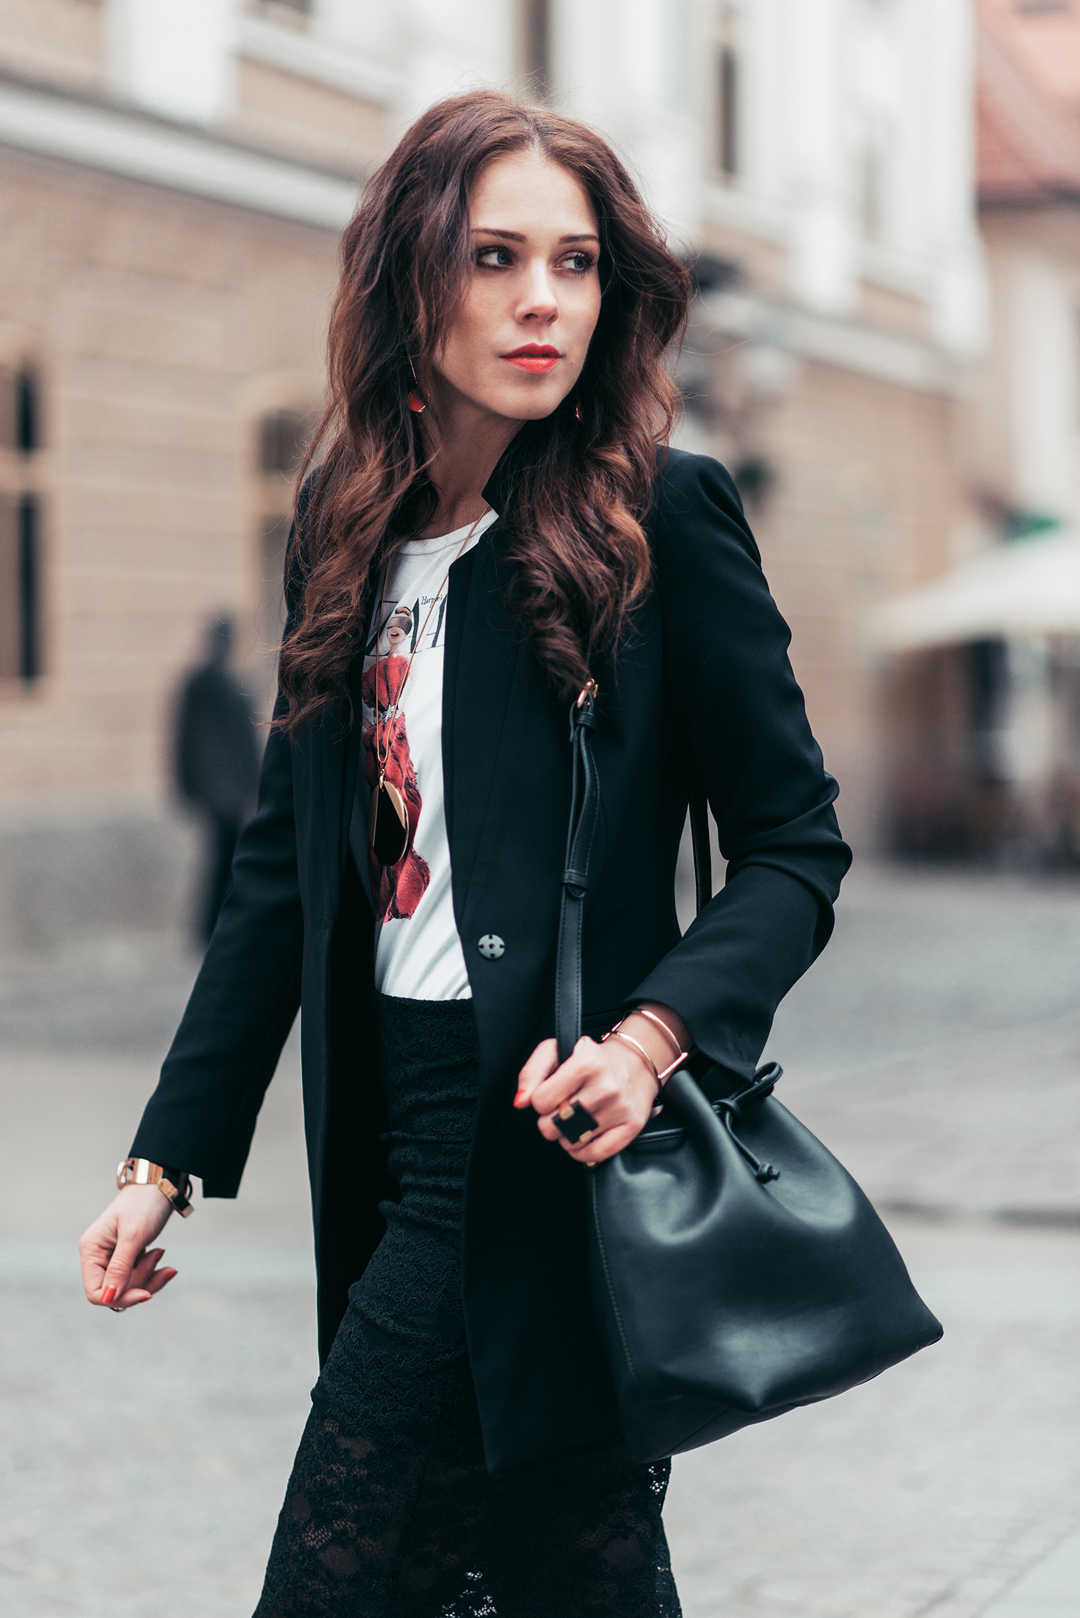 eva-ahacevcic_love-eva_ootd_six-accessories_zara-skirt_blazer_parfois-shoes_style_fashion-8